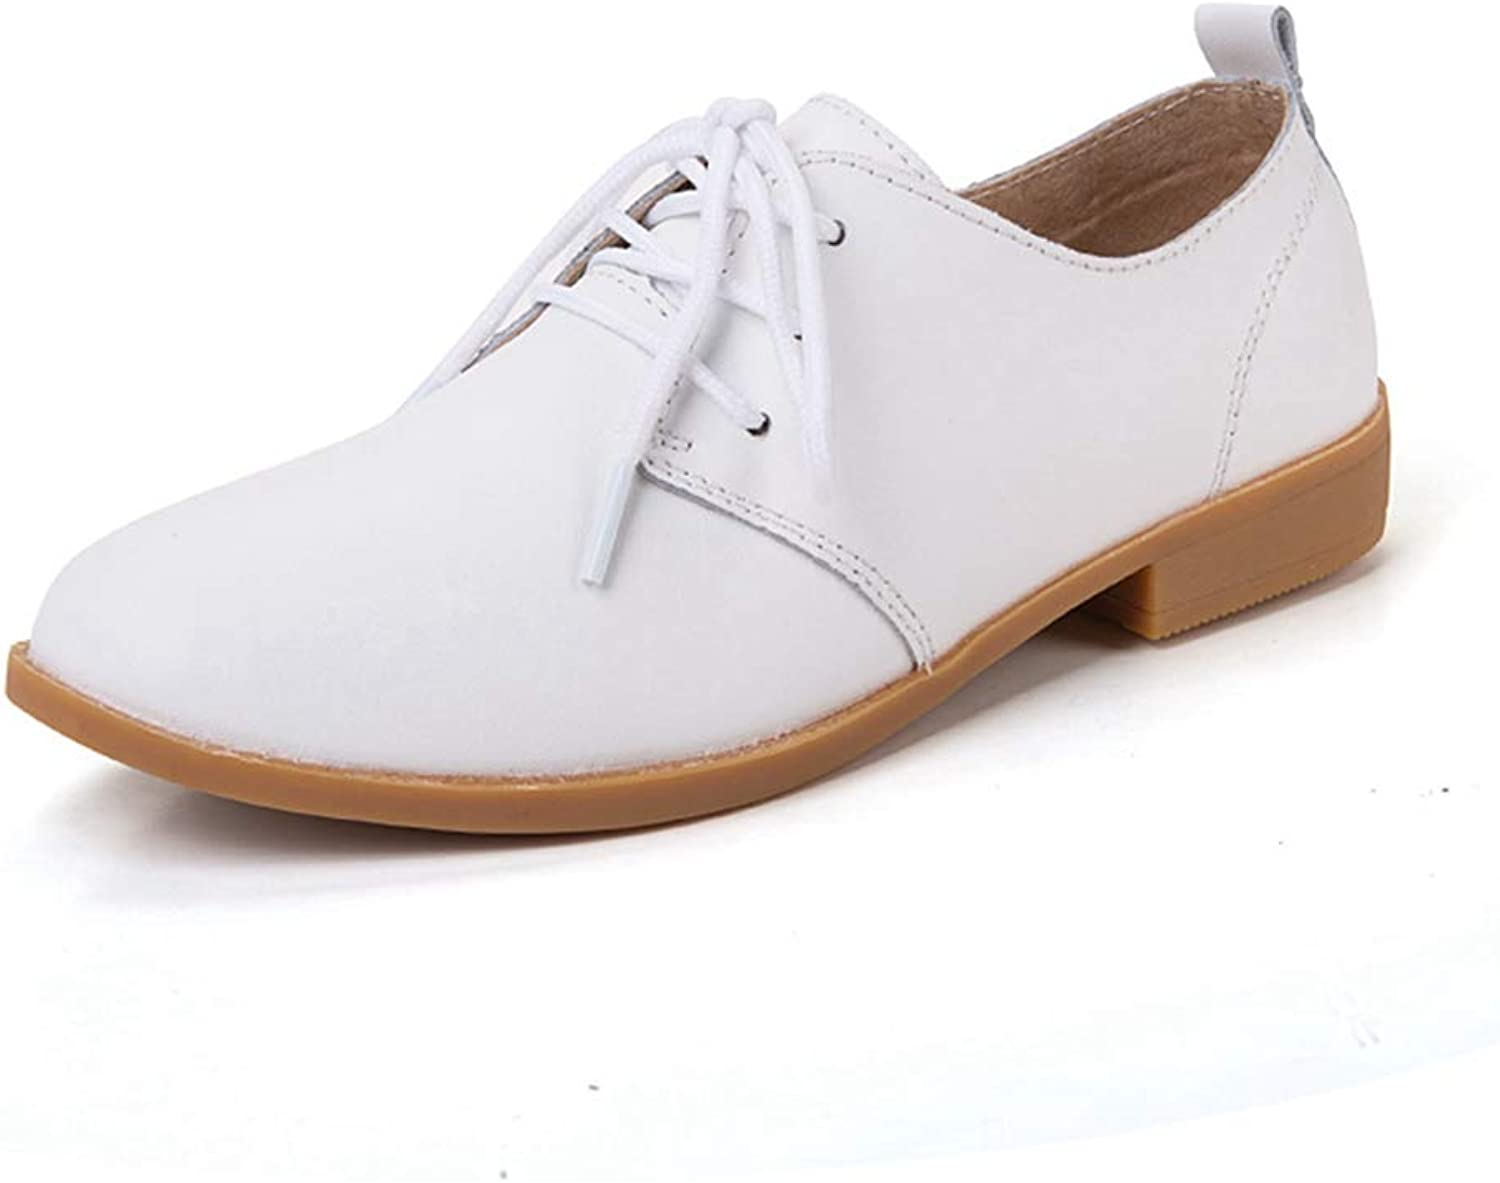 August Jim Women Oxfords shoes,Lace Up Ladies Casual shoes White Black